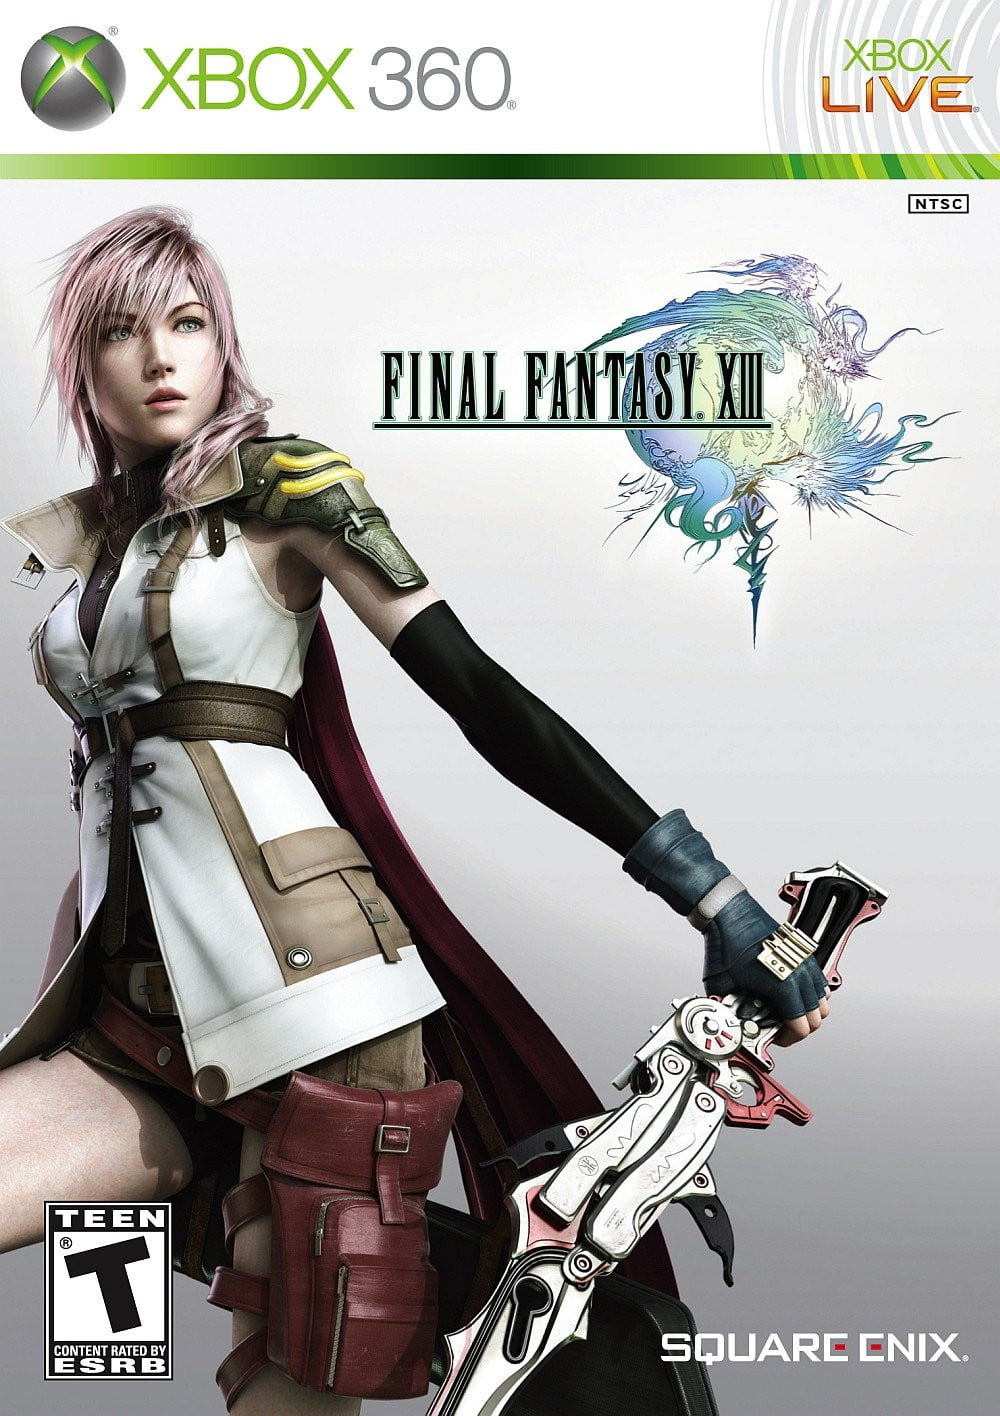 Final fantasy XIII (XBOX 360) XBOX 360 Game - Shamy Stores